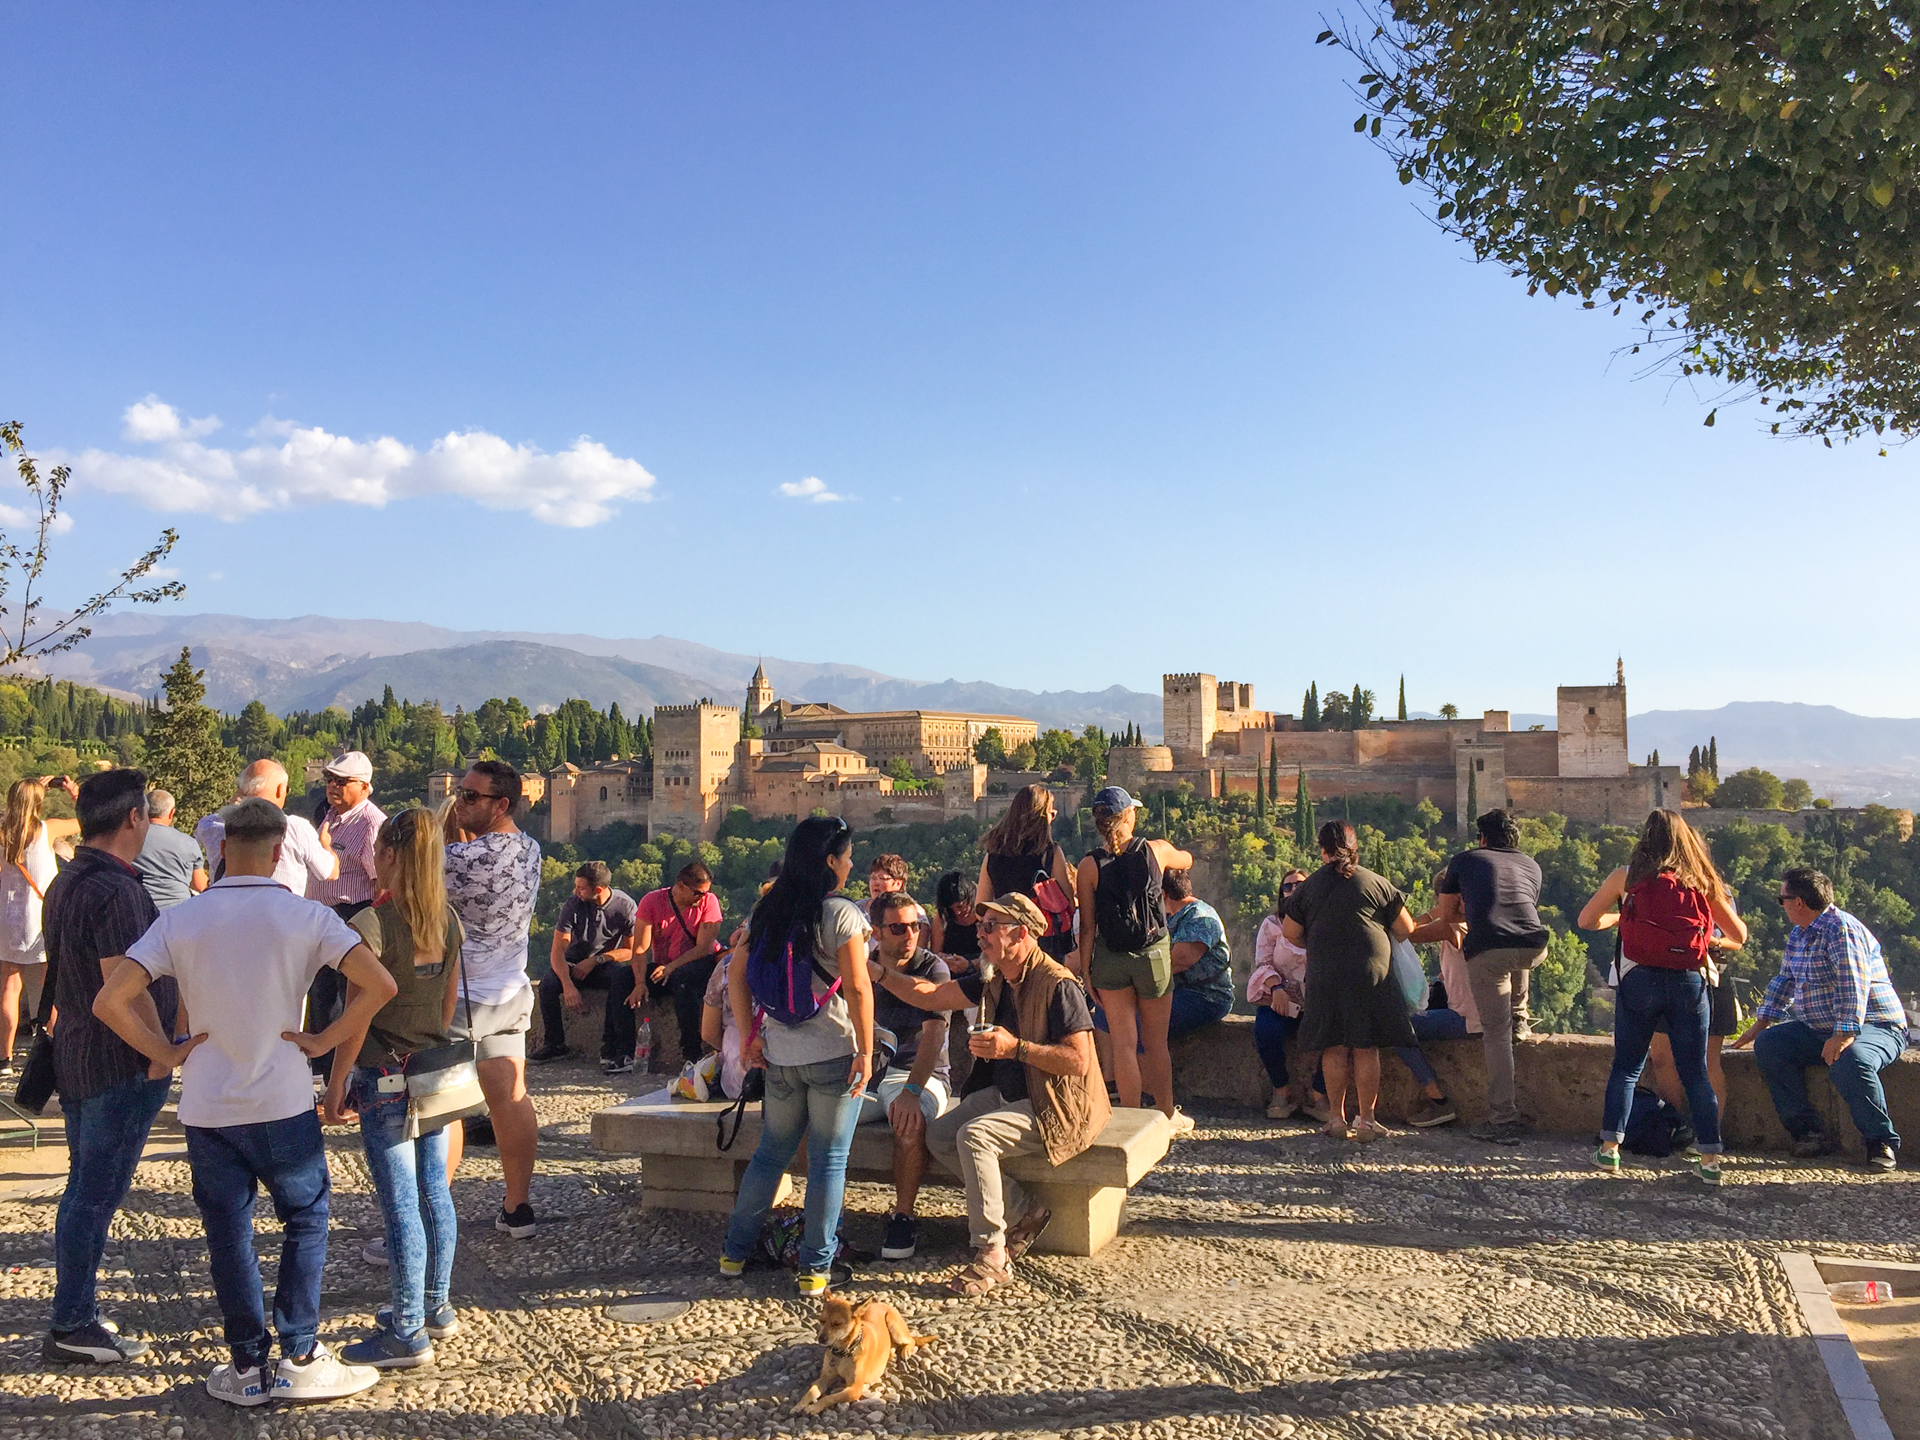 Crowds at Alhambra viewpoint, Granada in the afternoon.